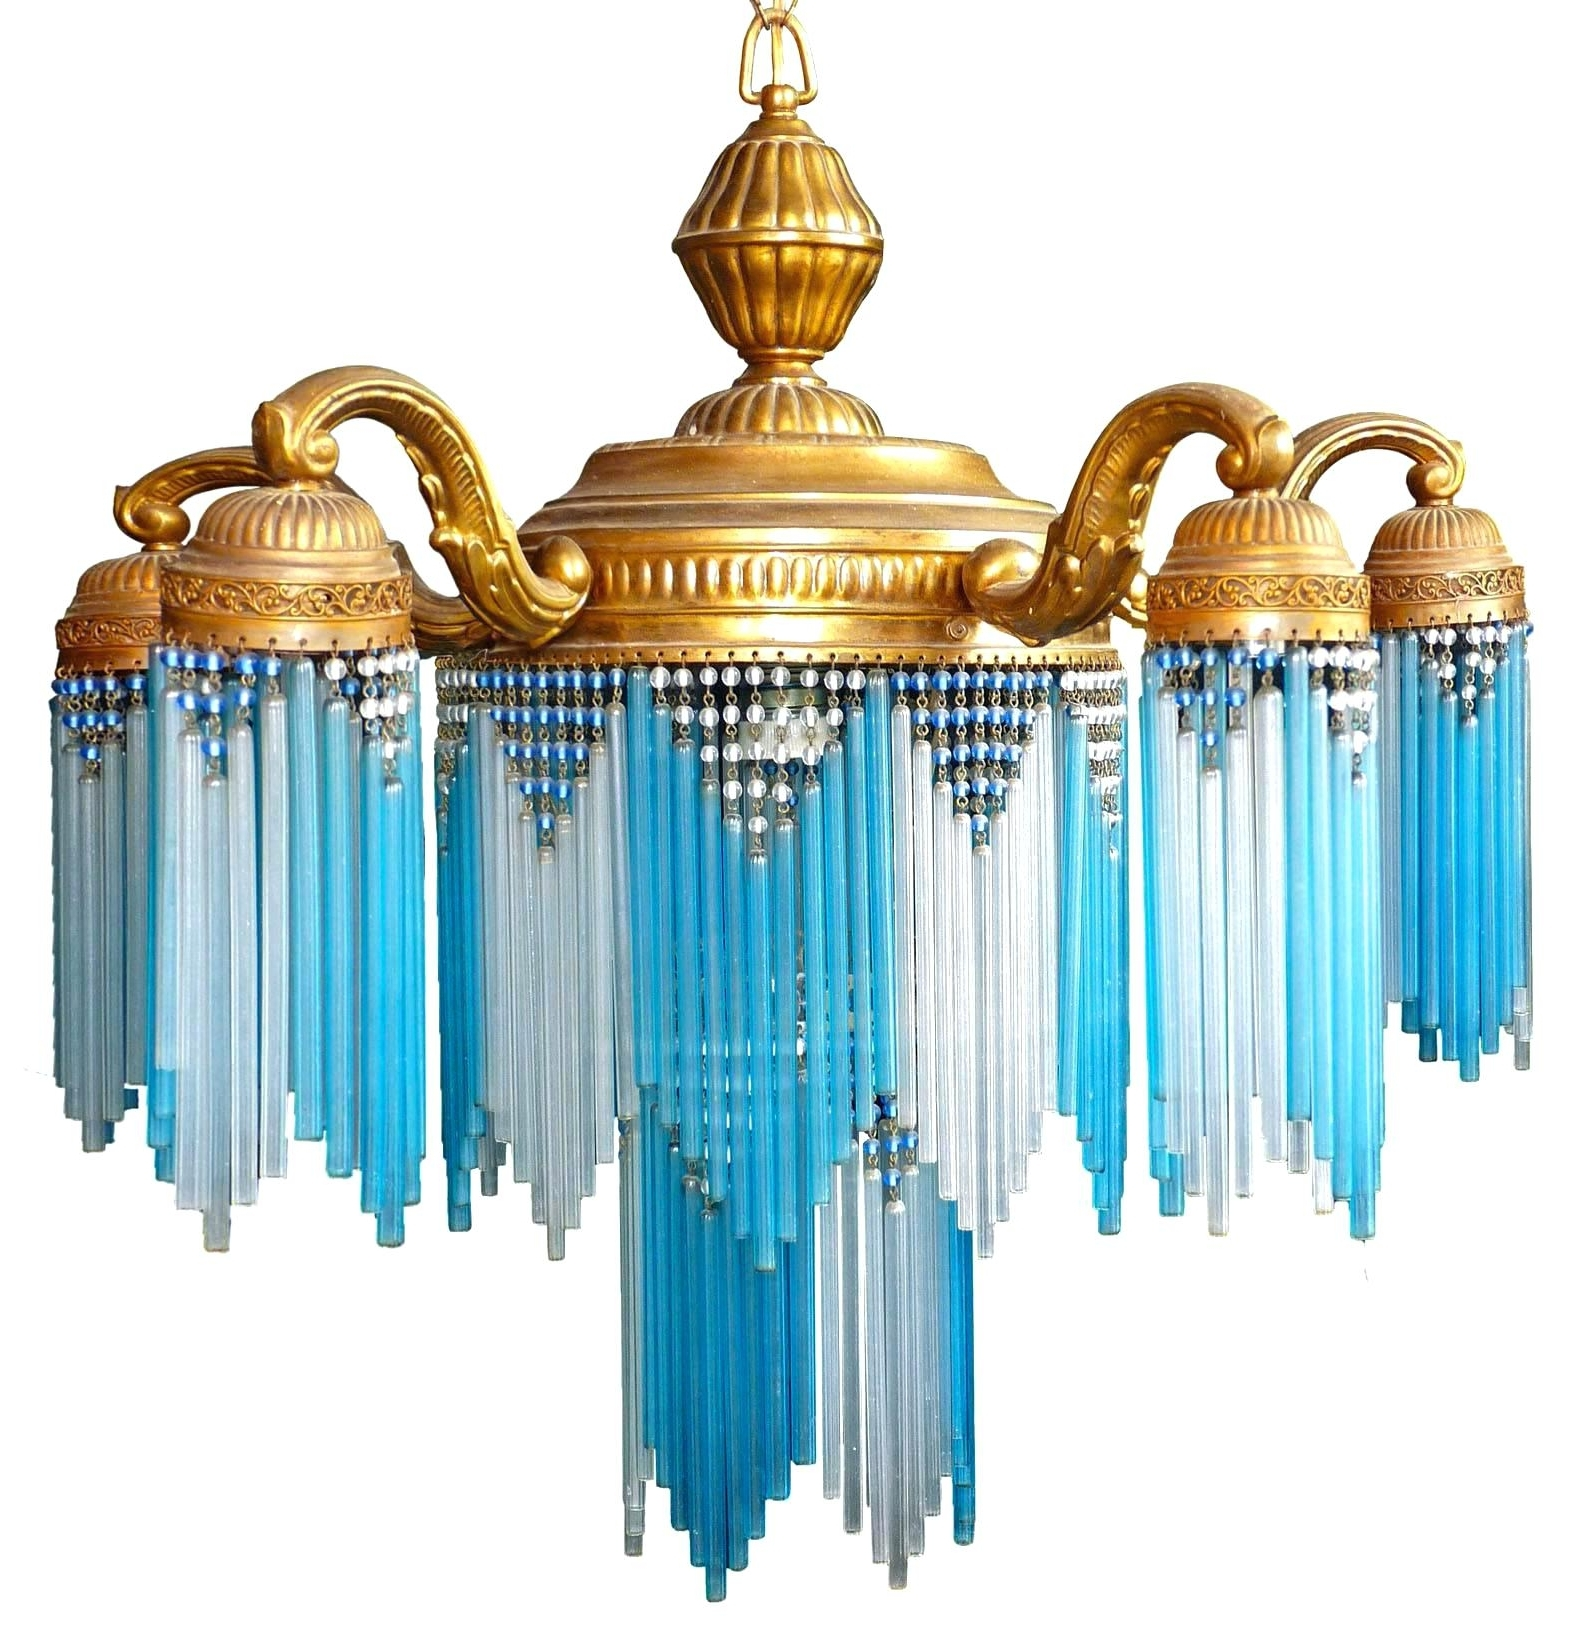 2018 Turquoise Beads Six Light Chandeliers Intended For Lighting : Regina Andrew Turquoise Chandelier Light Wood Diy Small (View 19 of 20)